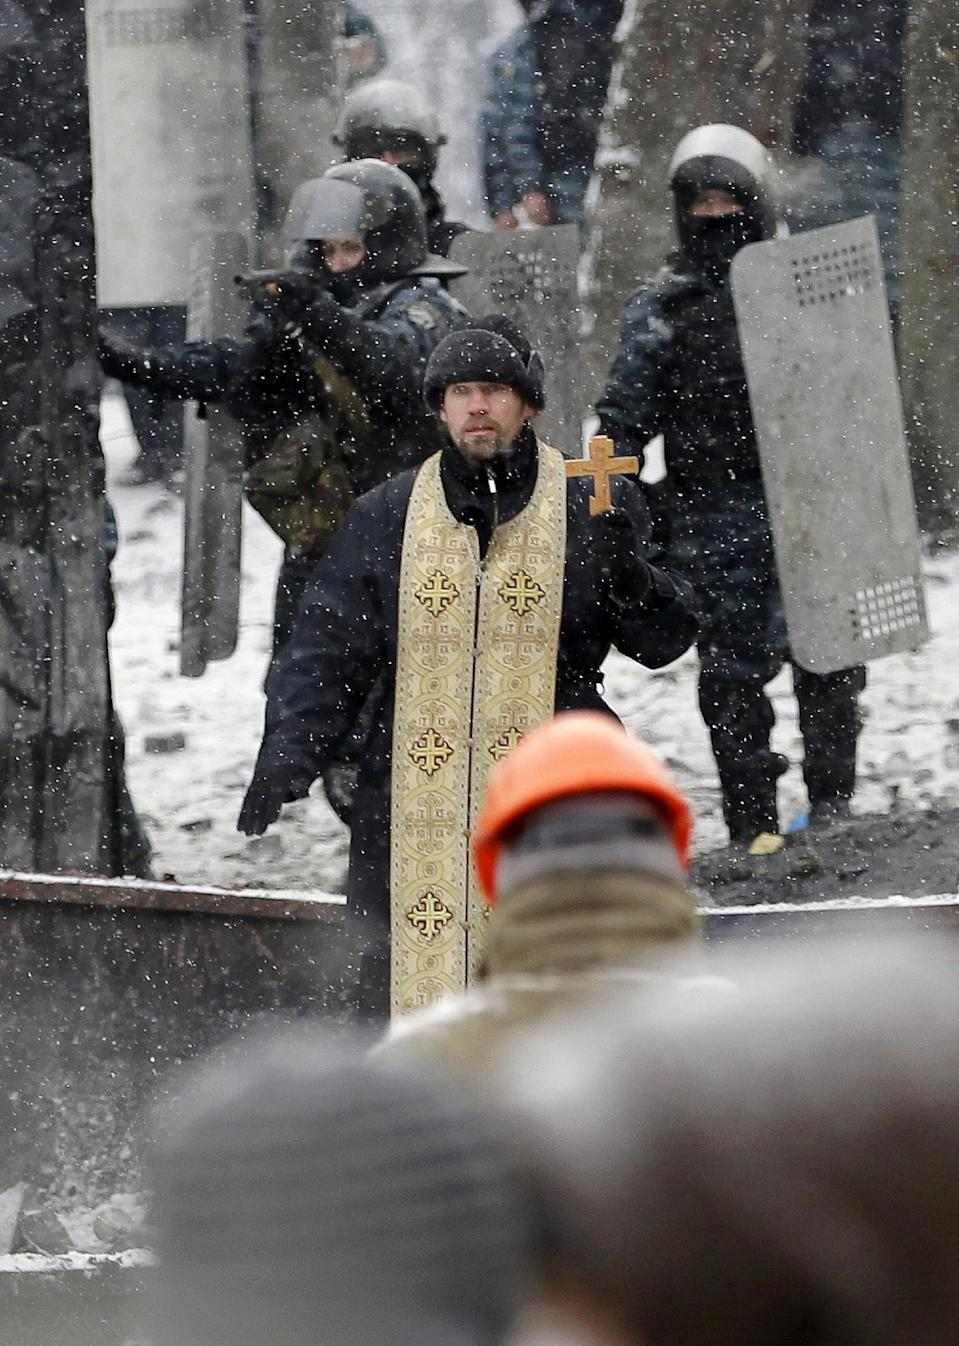 In this file photo taken on Wednesday, Jan. 22, 2014, An Orthodox priest prays as he stands between pro-European Union activists and police lines during clashes in central Kiev, Ukraine. As a barricade of blazing tires belched thick black smoke, a line of priests stood between angry protesters and ominous riot police. Every freezing morning, priests sing prayers to demonstrators gathered on the Ukrainian capital's main square, a solemn and soothing interlude to vehement speeches calling for revolution. (AP Photo/Darko Vojinovic, file)